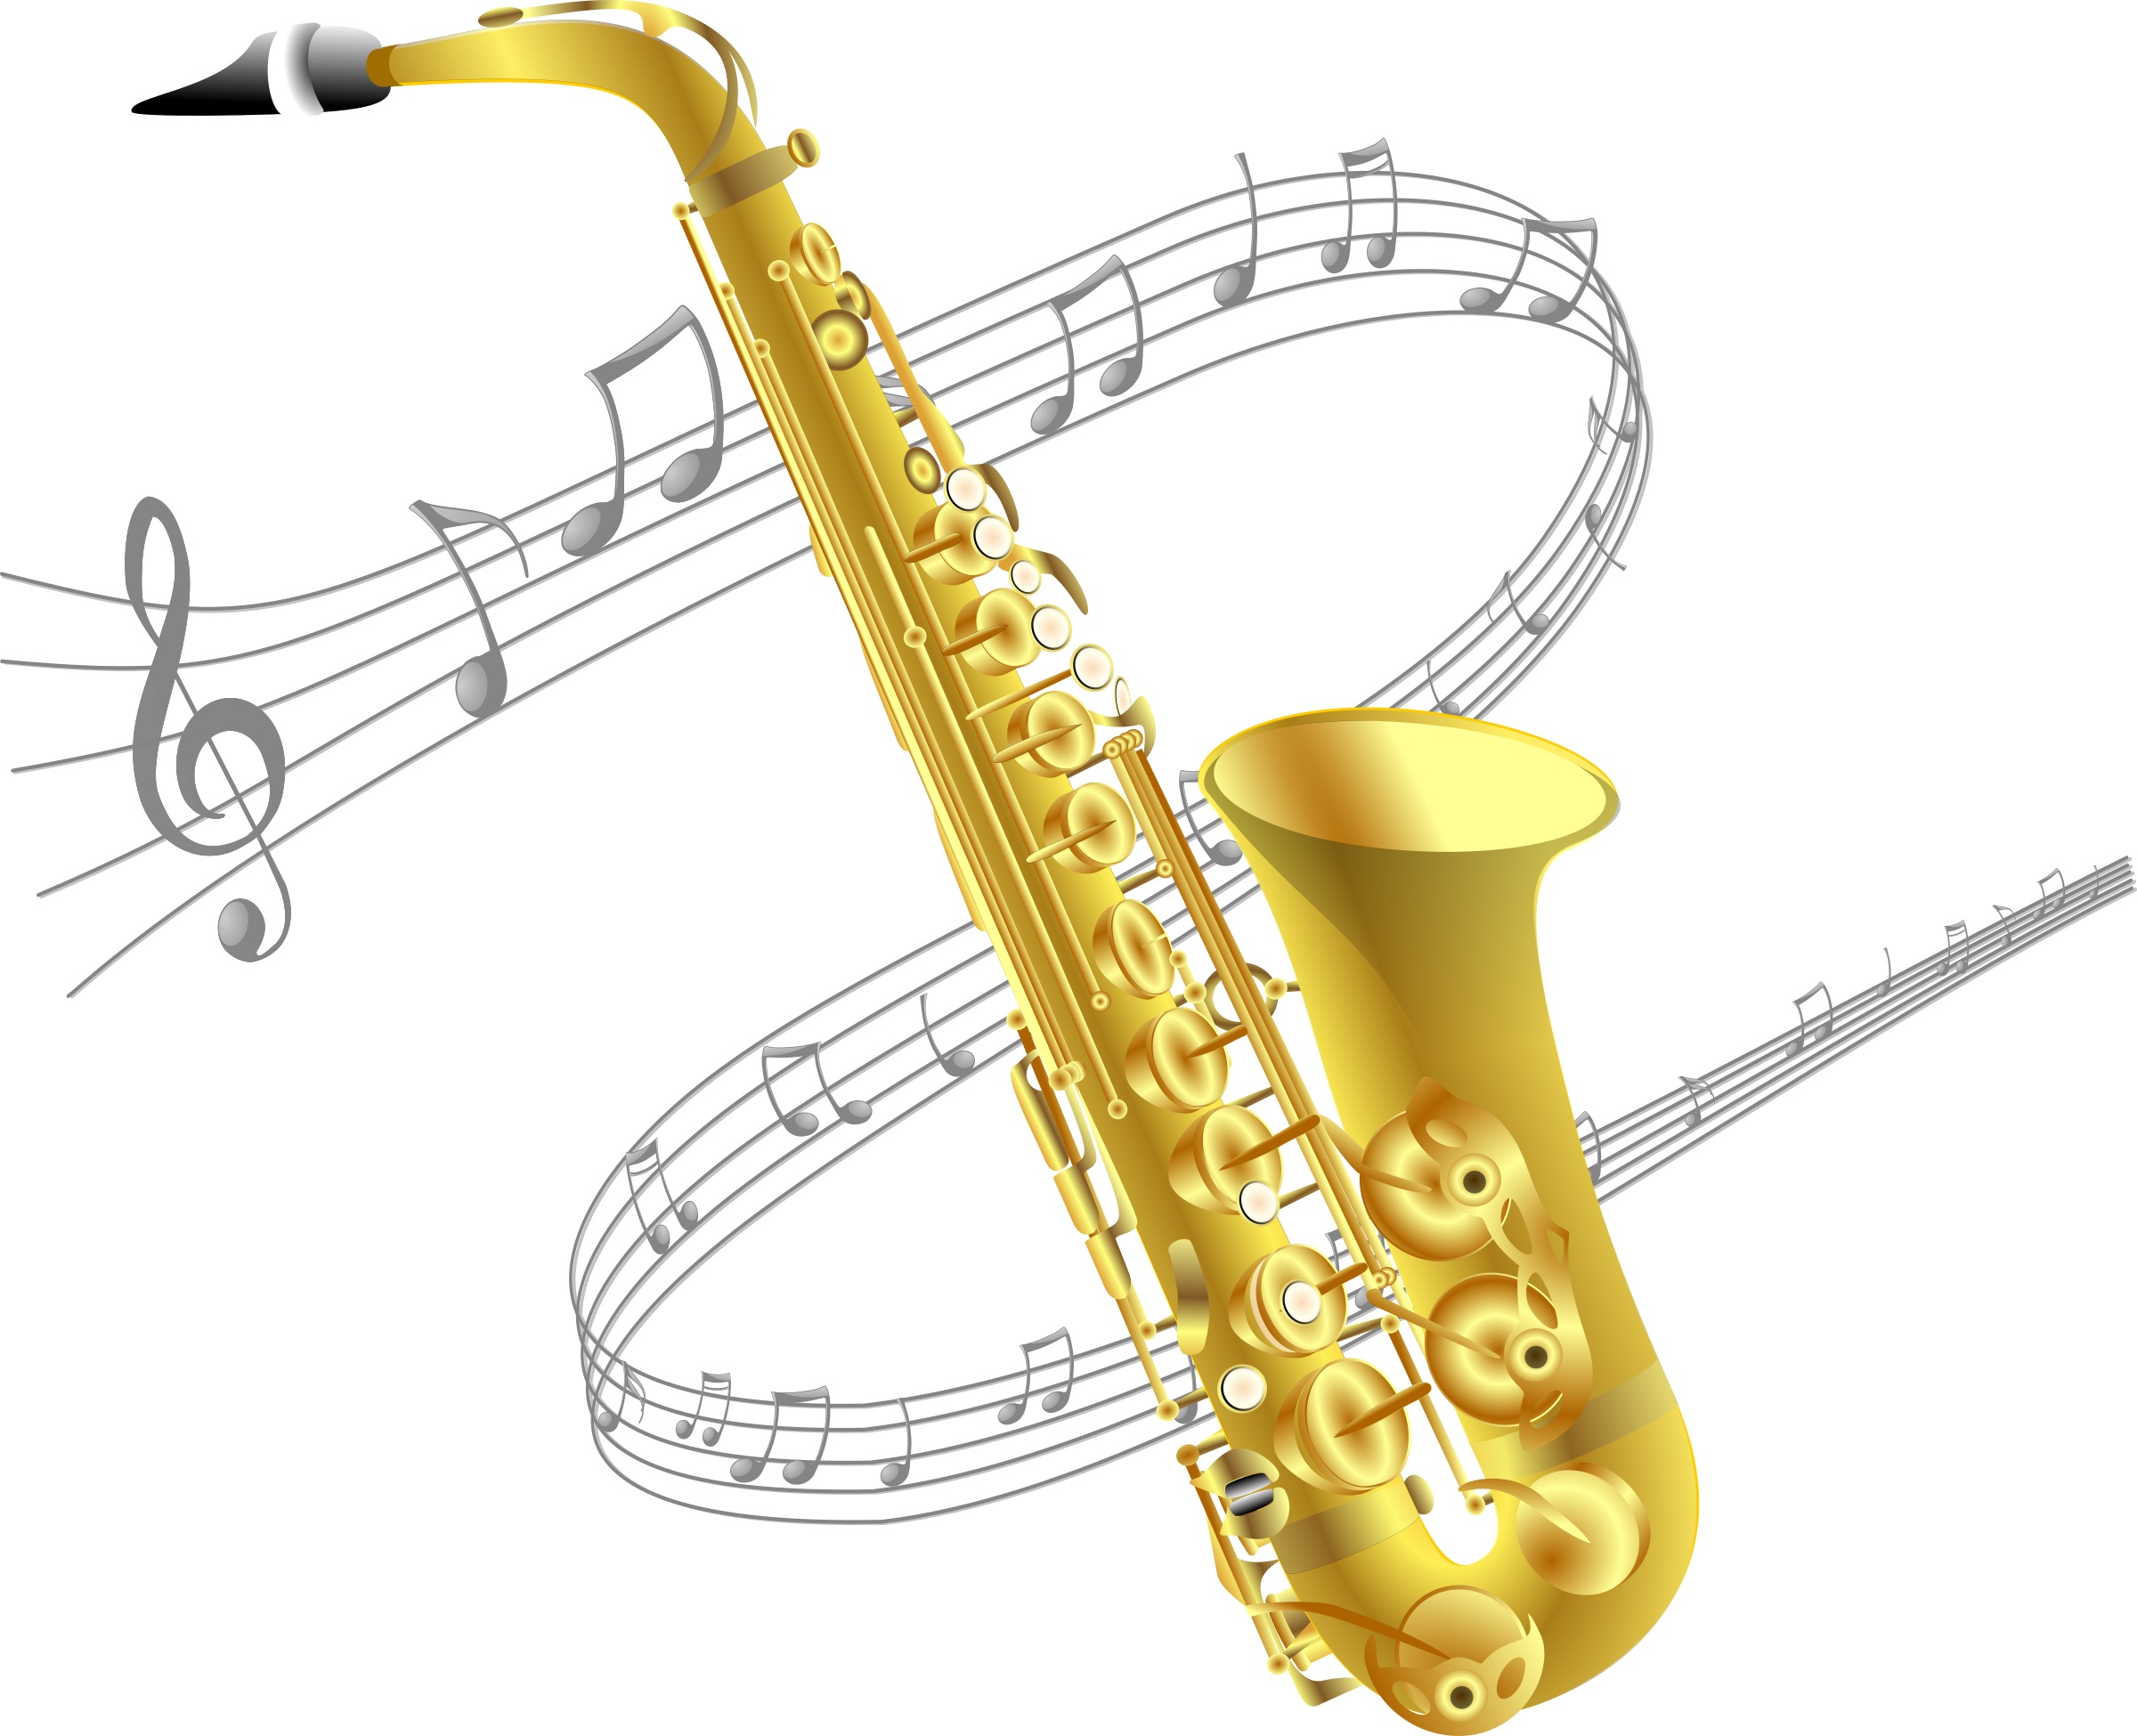 Saxophone with music background by Manuela.